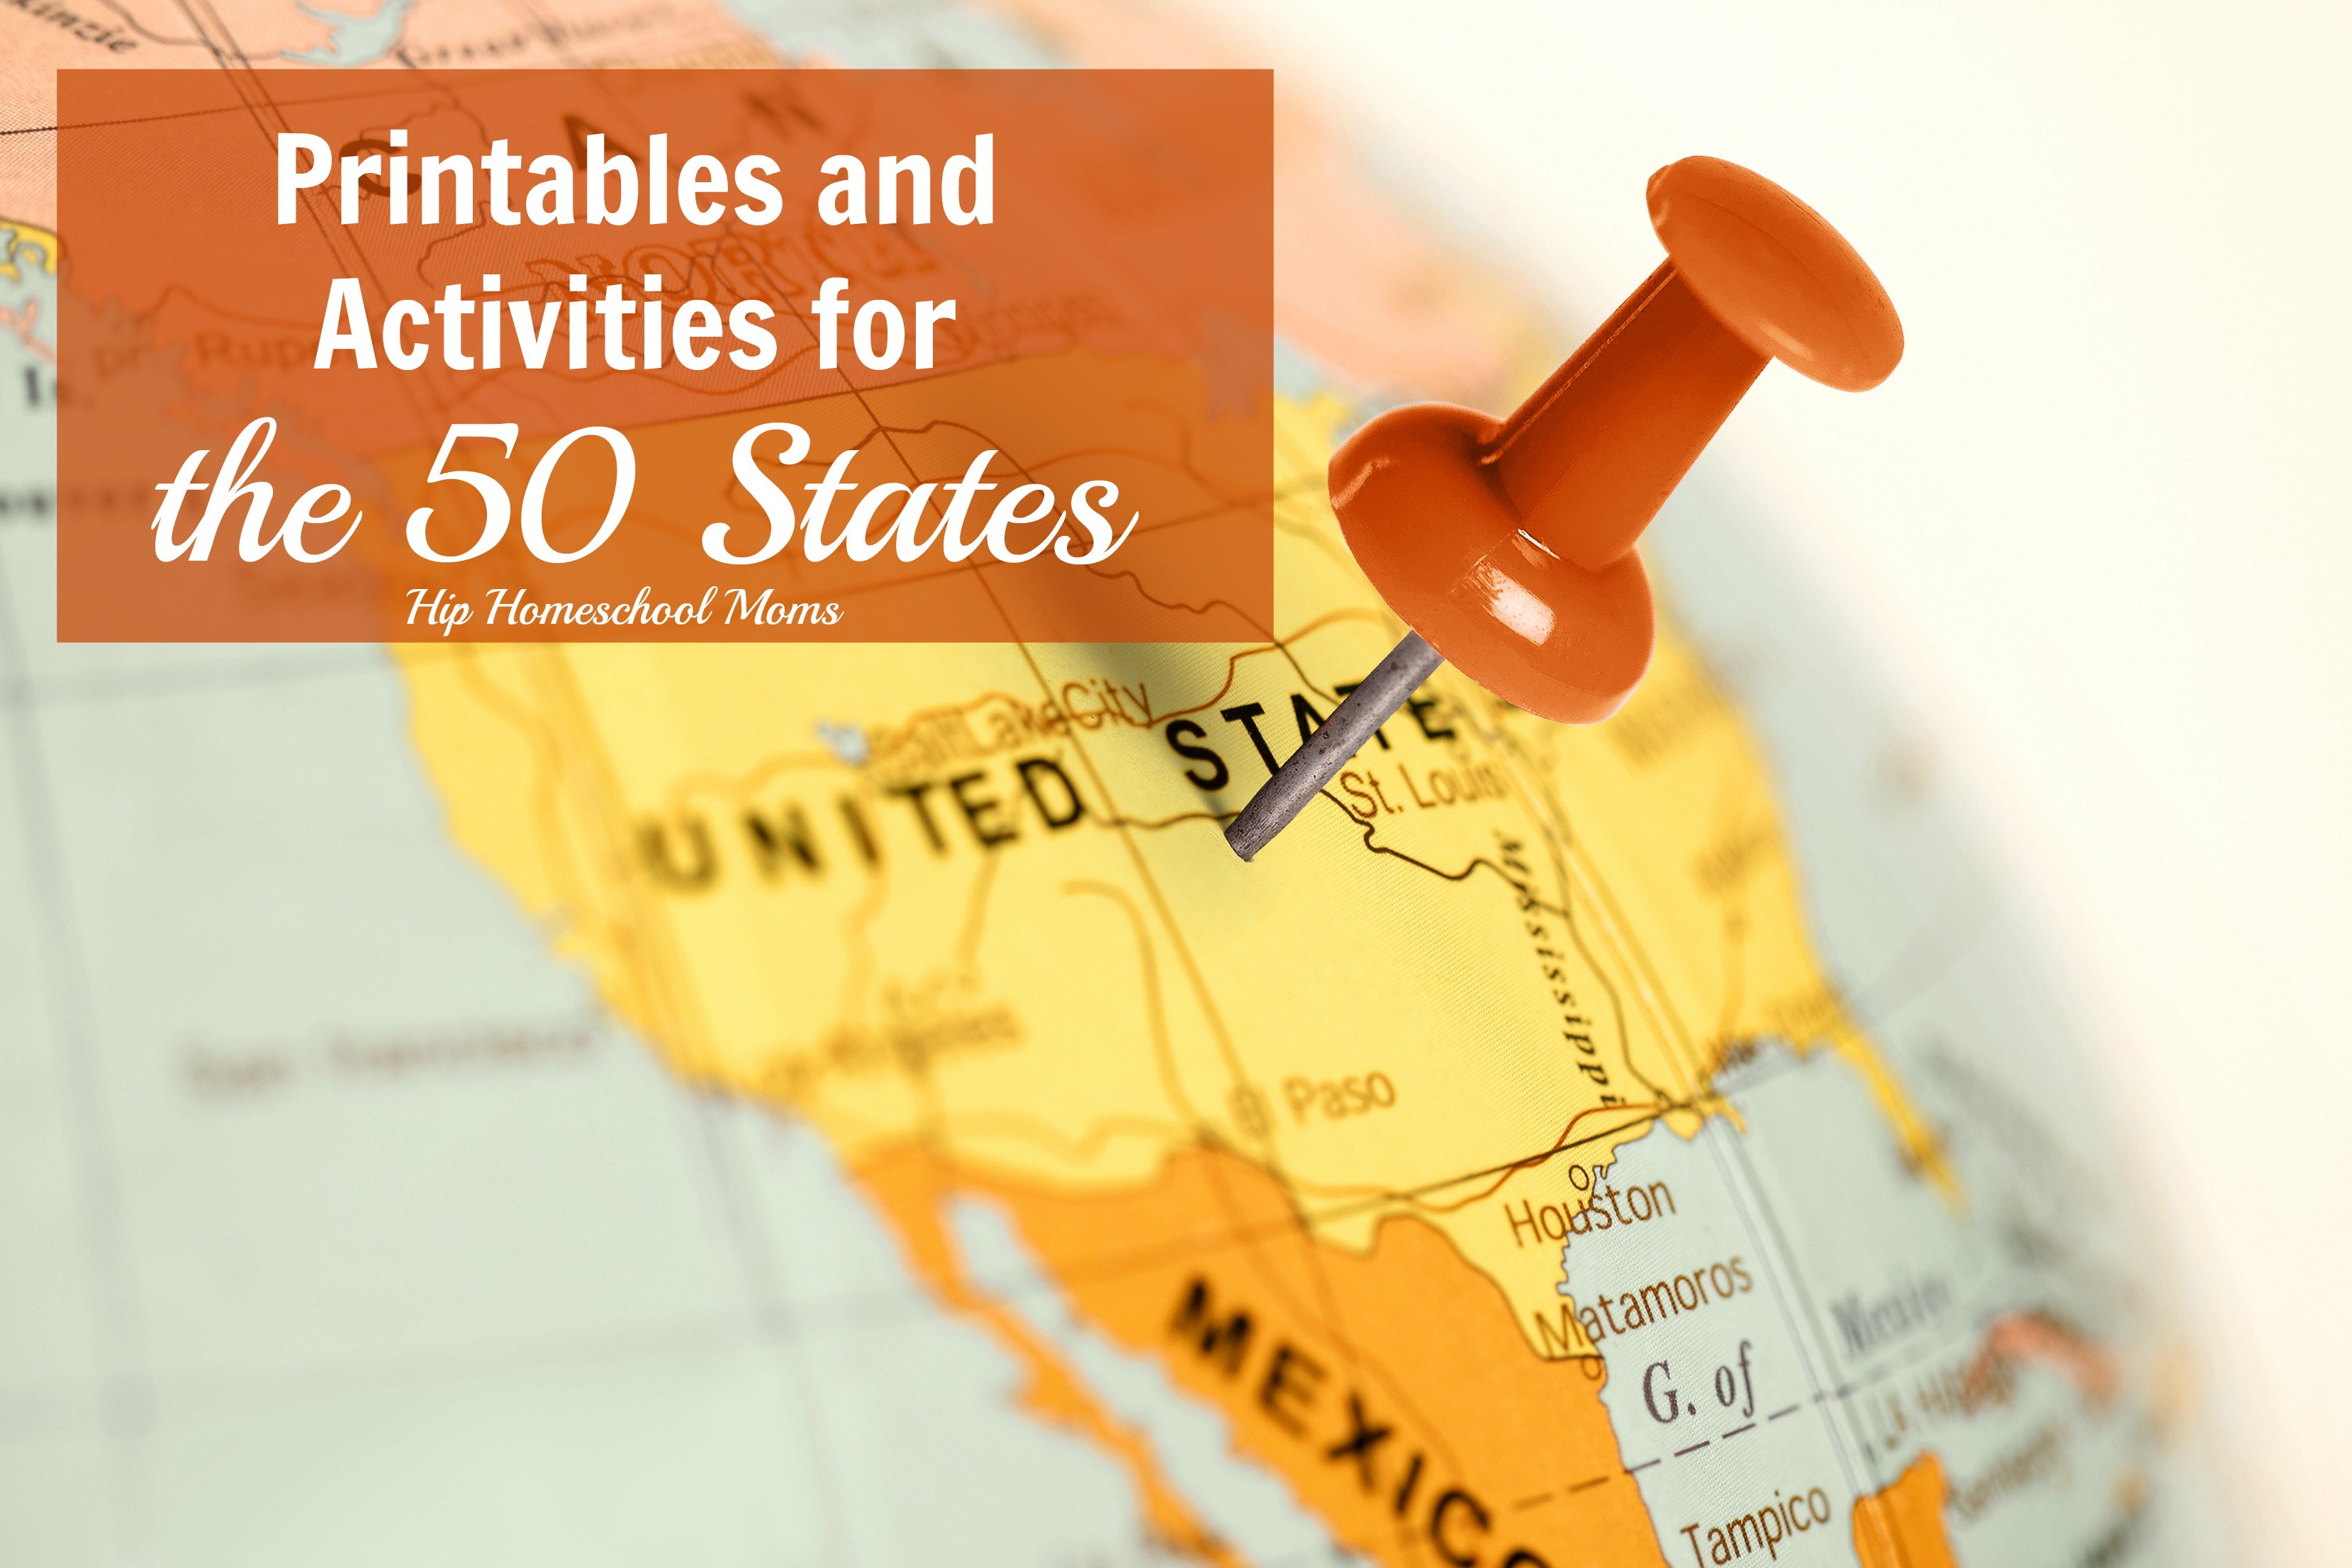 photograph regarding 50 States Activities Printable known as The 50 Claims Printables and Pursuits Hip Homeschool Mothers